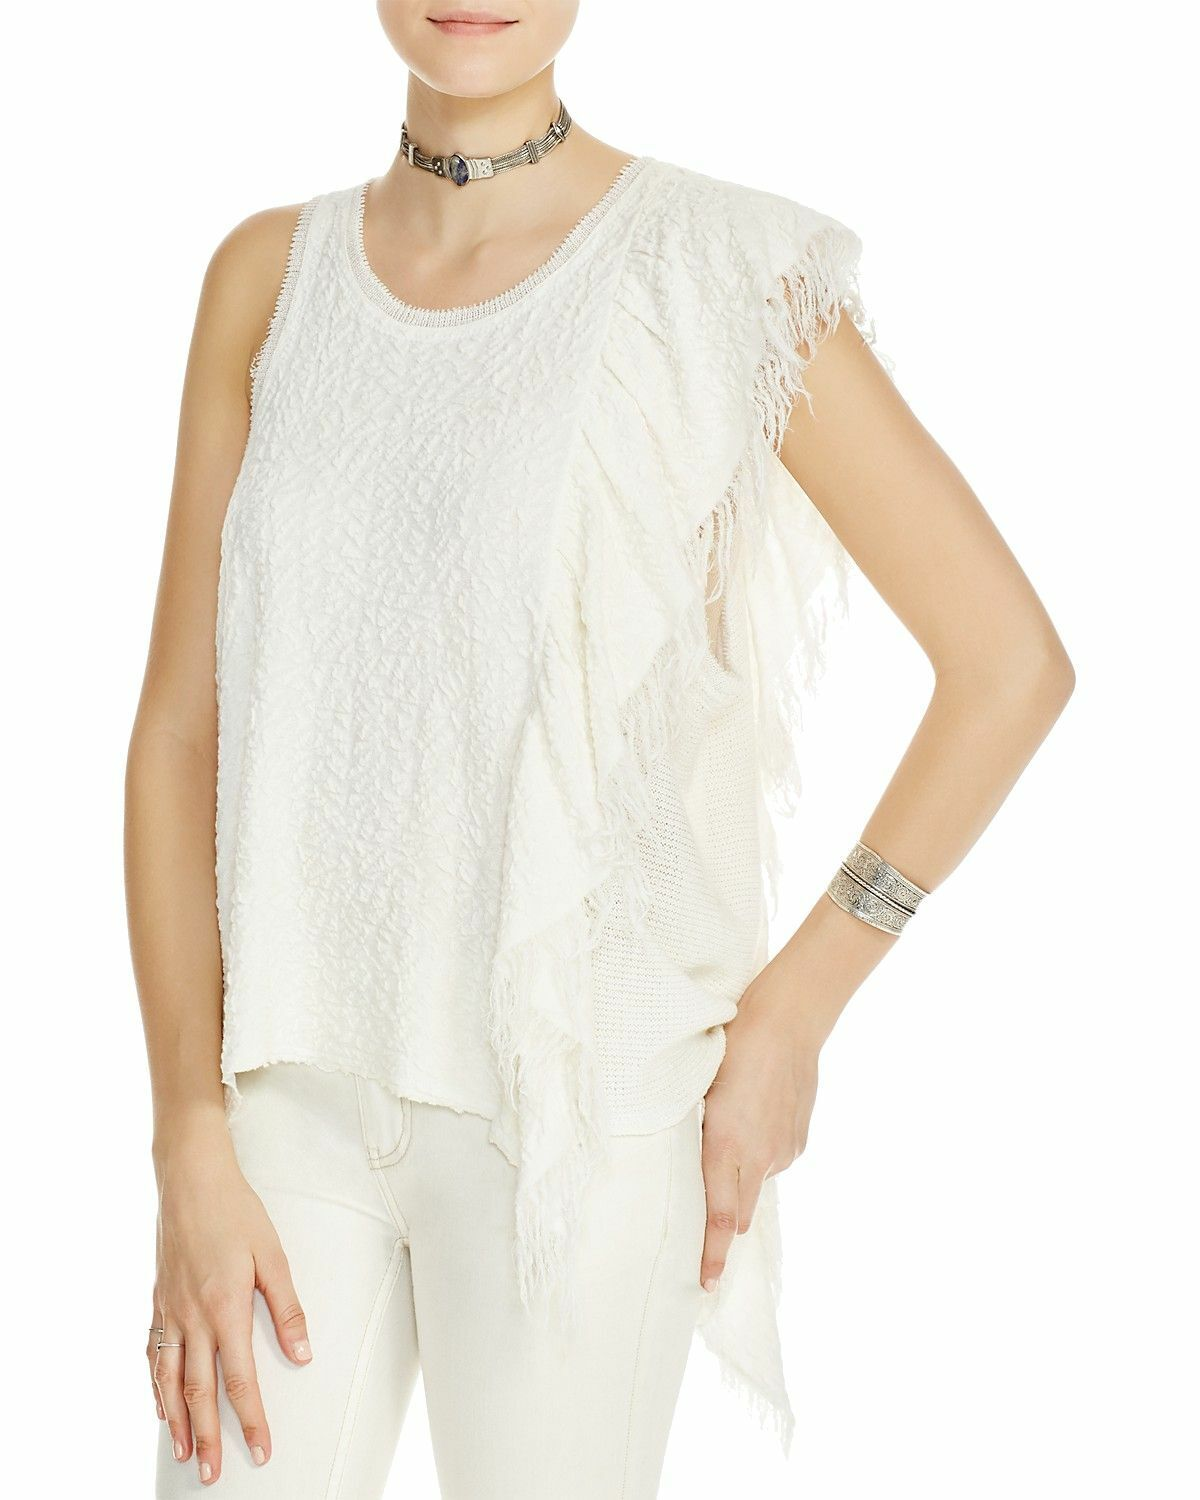 Free People Womens Asymmetrical Fringed Knit Top Blouse Small S Ivory White